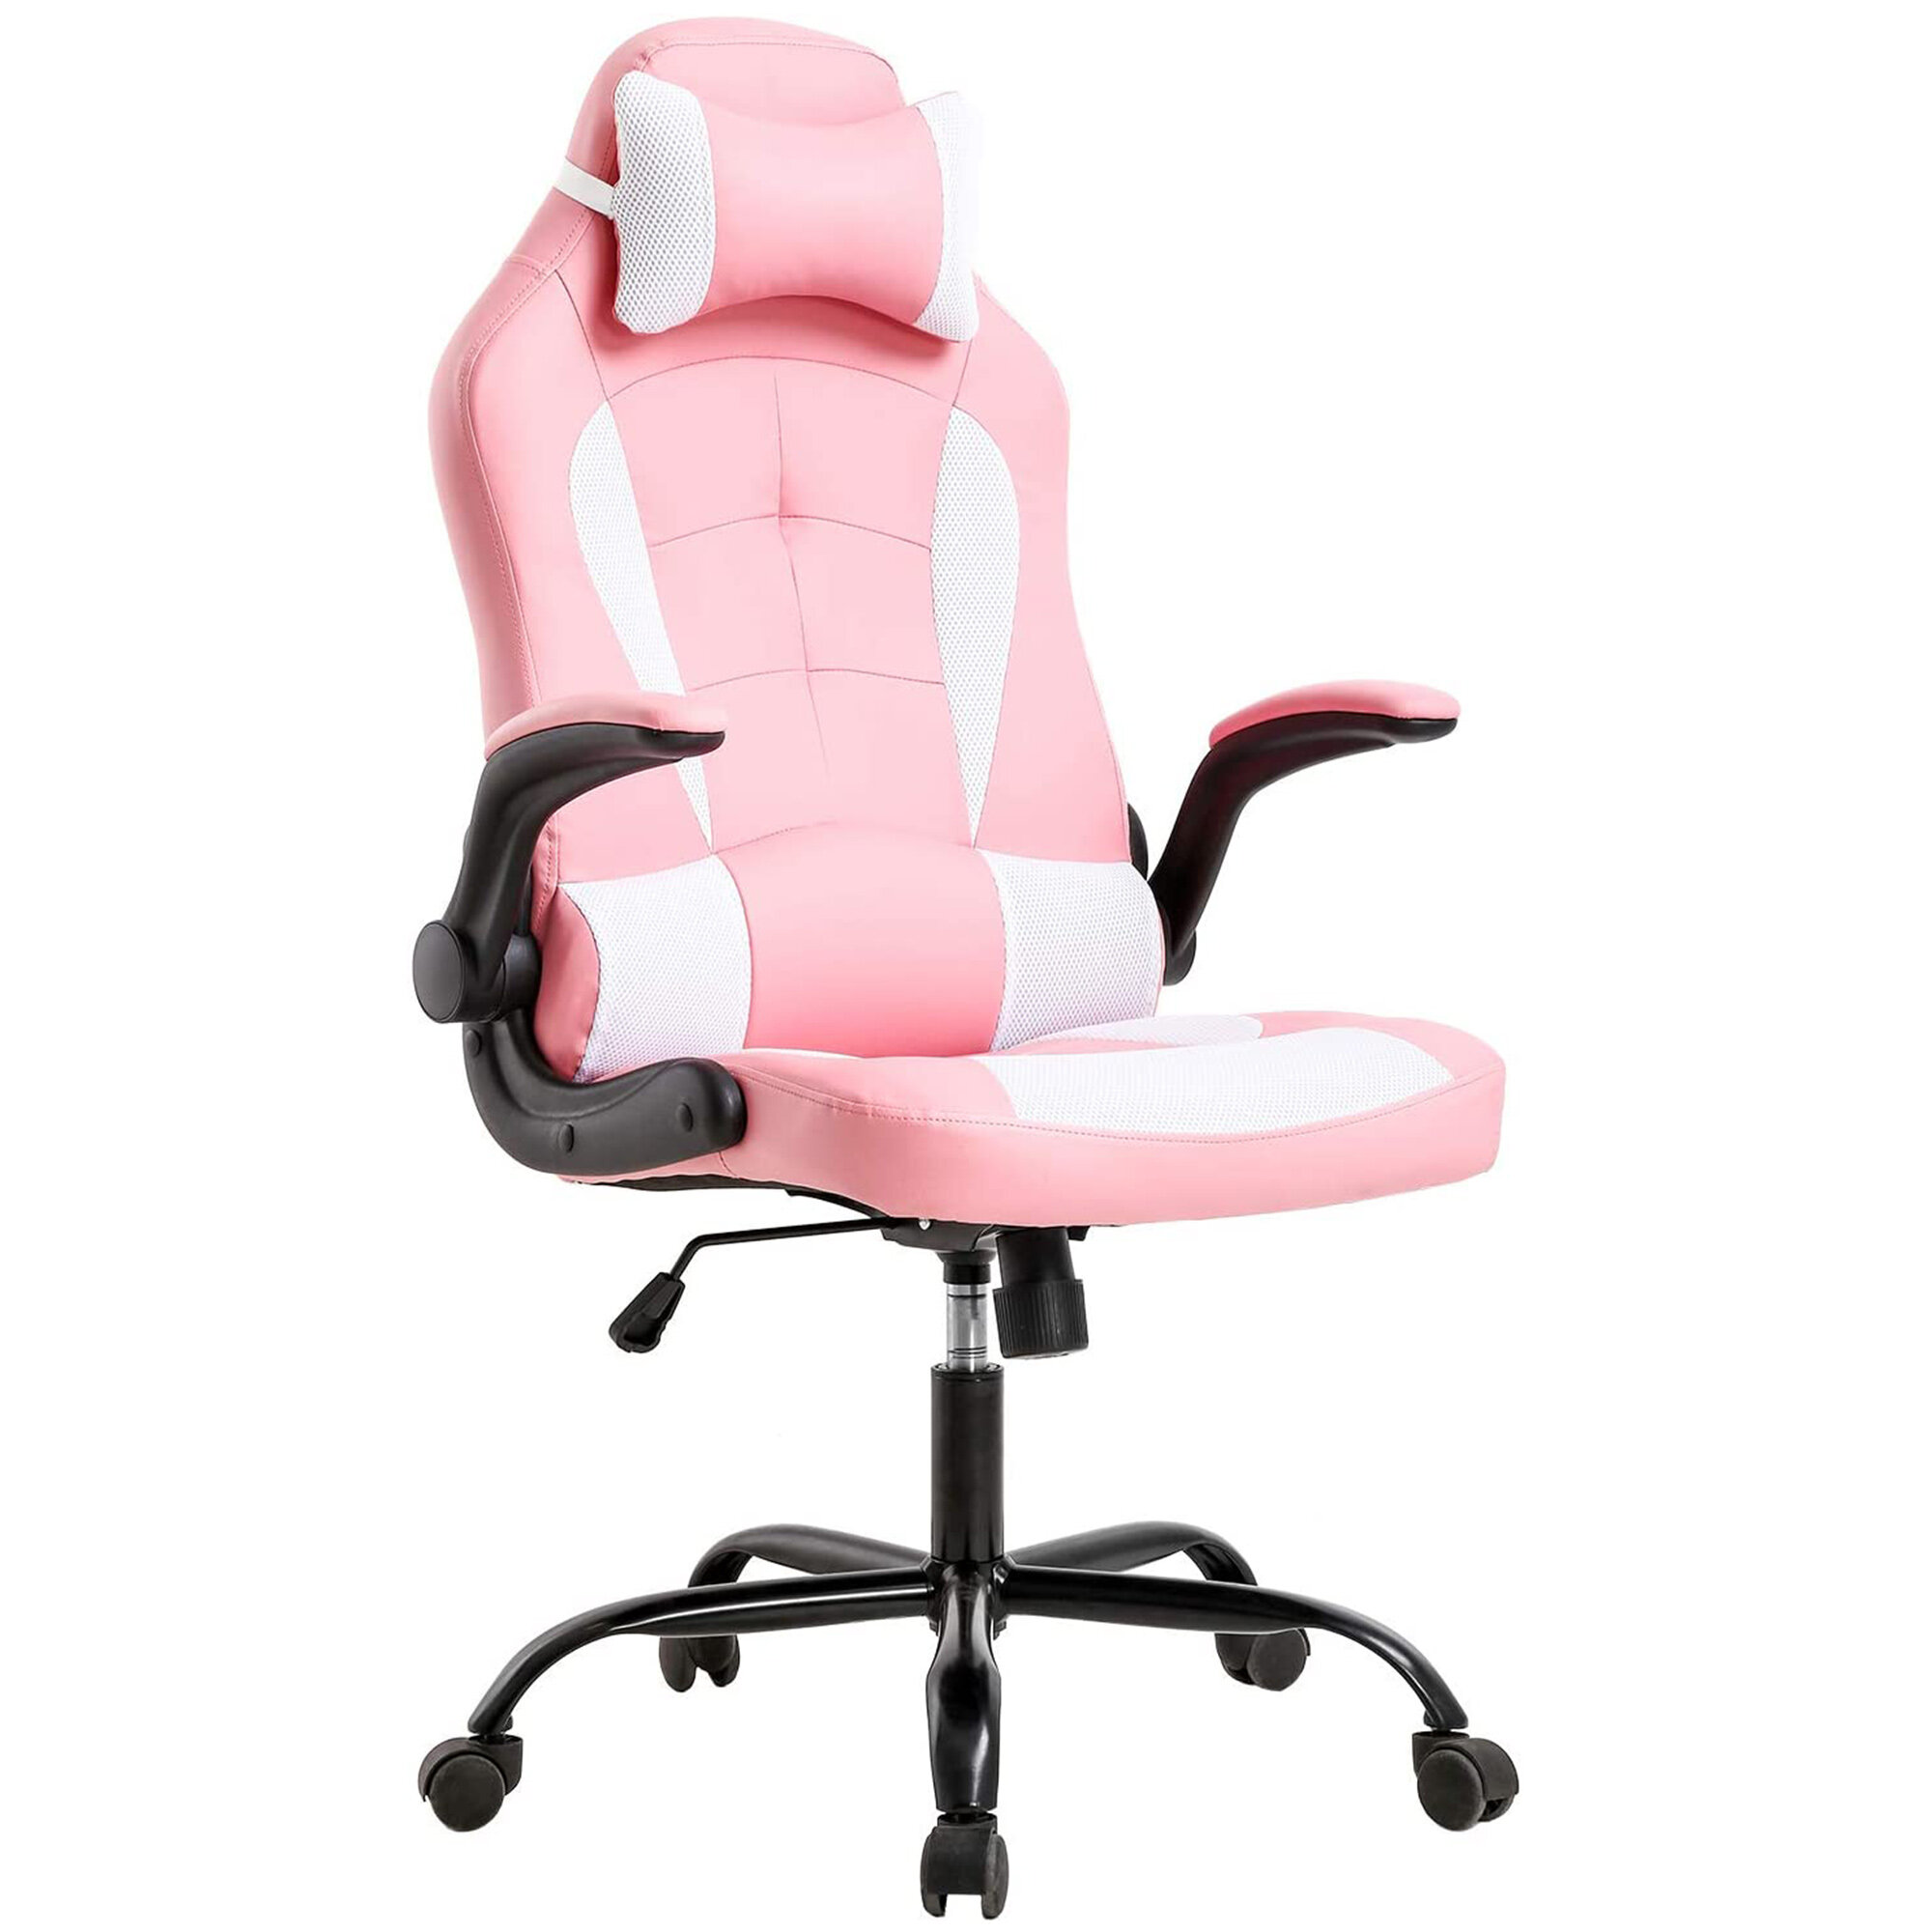 Inbox Zero Pc Gaming Chair Ergonomic Office Chair Desk Chair With Lumbar Support Flip Up Arms Adjustable Headrest High Back Pu Leather Racing Rolling Swivel Executive Computer Chair For Women Adults Girls